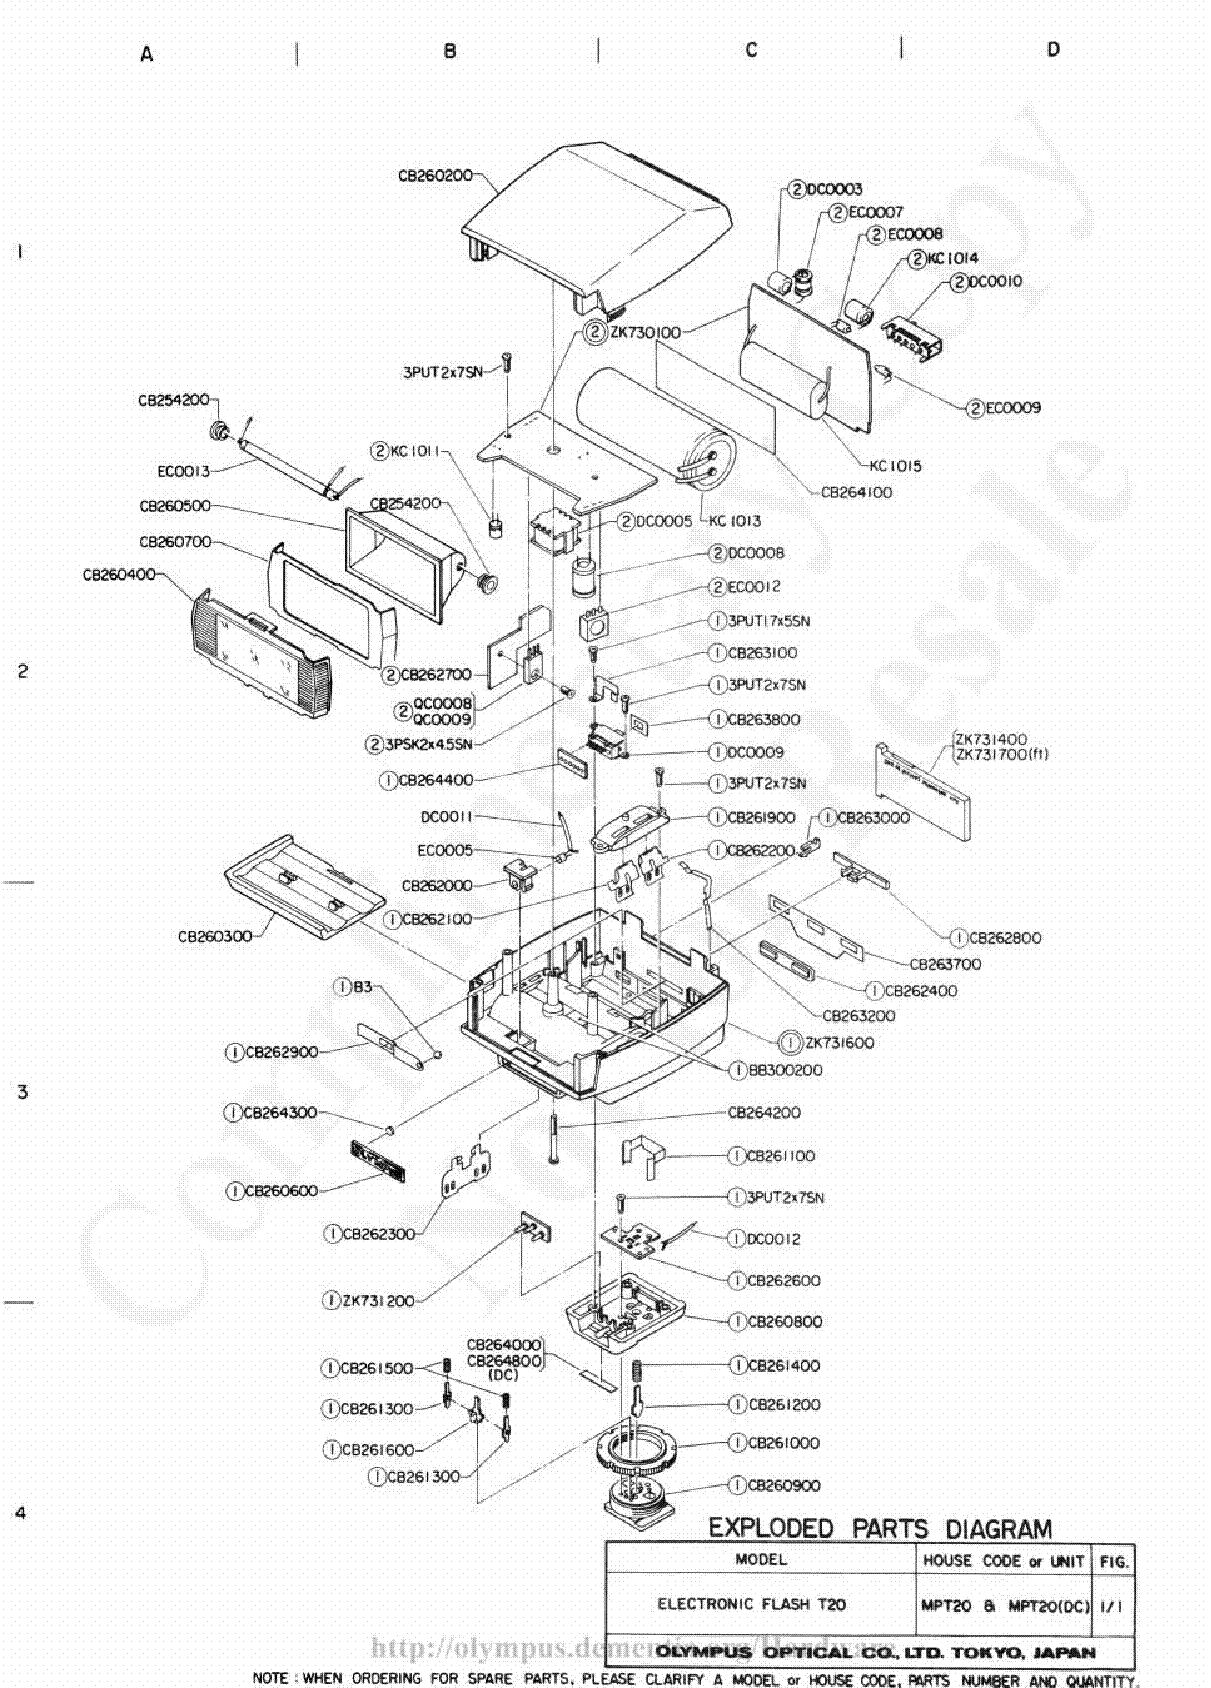 OLYMPUS 200MM F4.0 EXPLODED PARTS DIAGRAM Service Manual